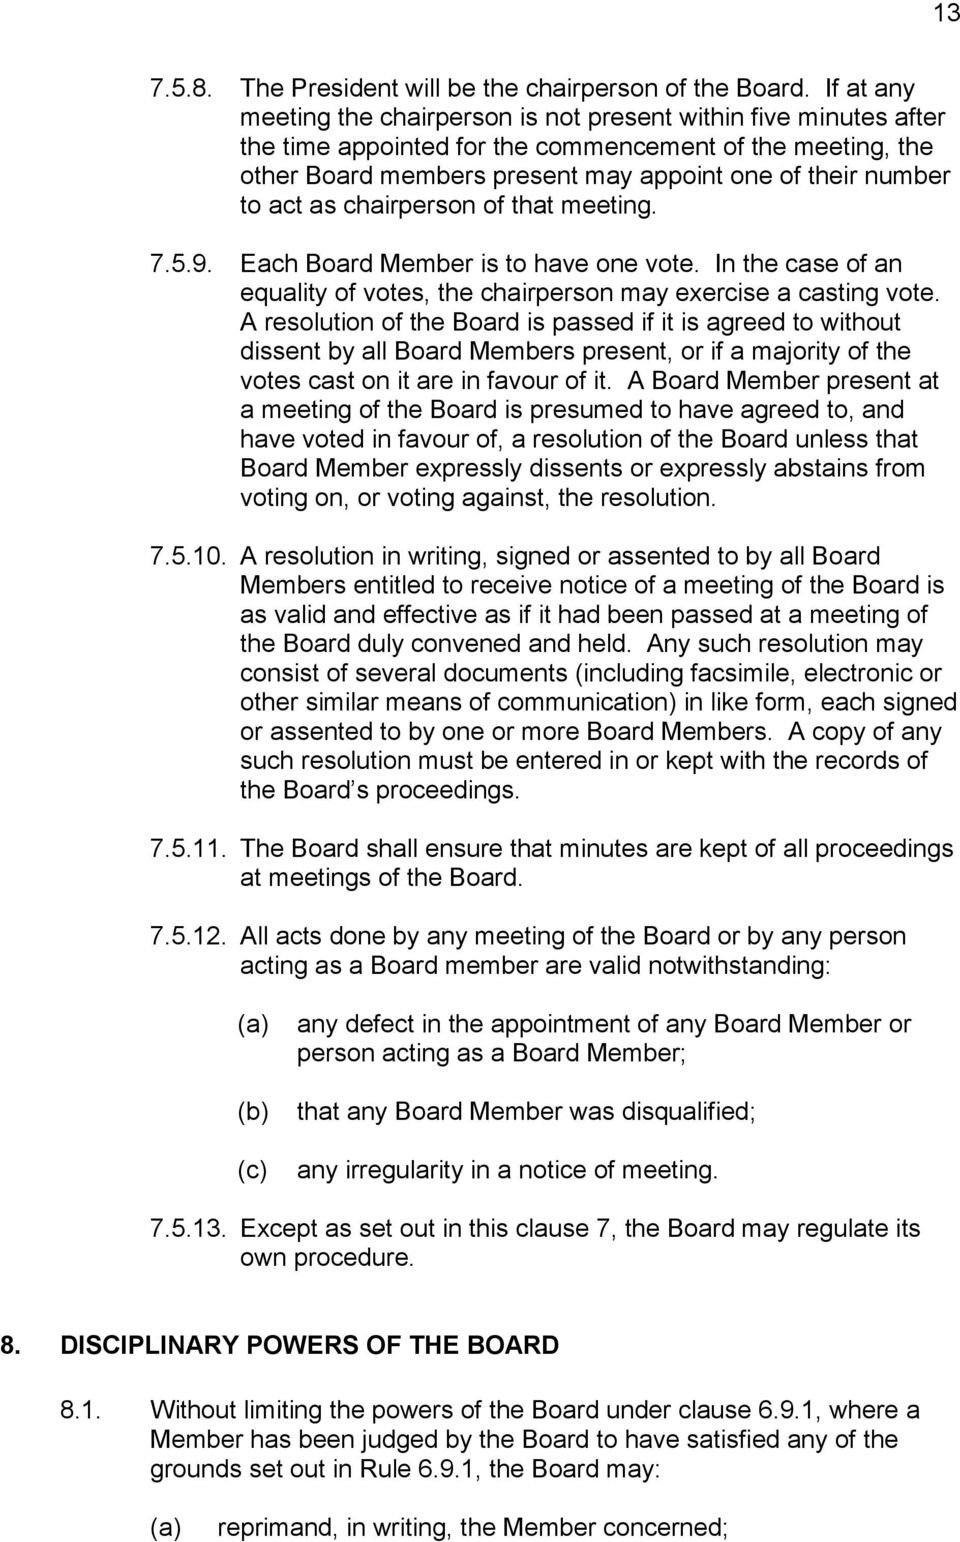 act as chairperson of that meeting. 7.5.9. Each Board Member is to have one vote. In the case of an equality of votes, the chairperson may exercise a casting vote.